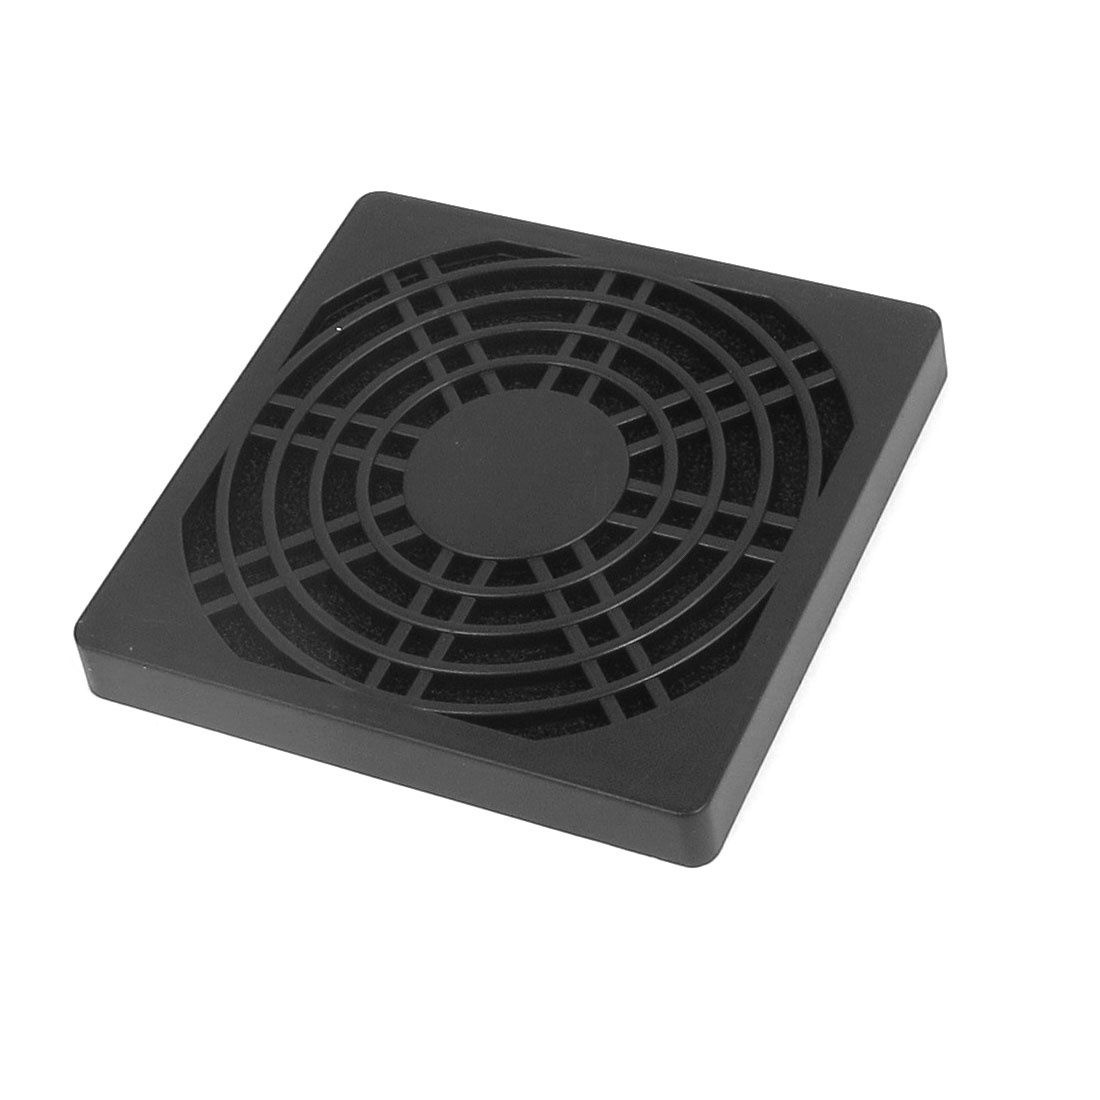 86mm x 86mm Black Plastic Square PC Cooler Fan Case Cover Dust Filter Protector